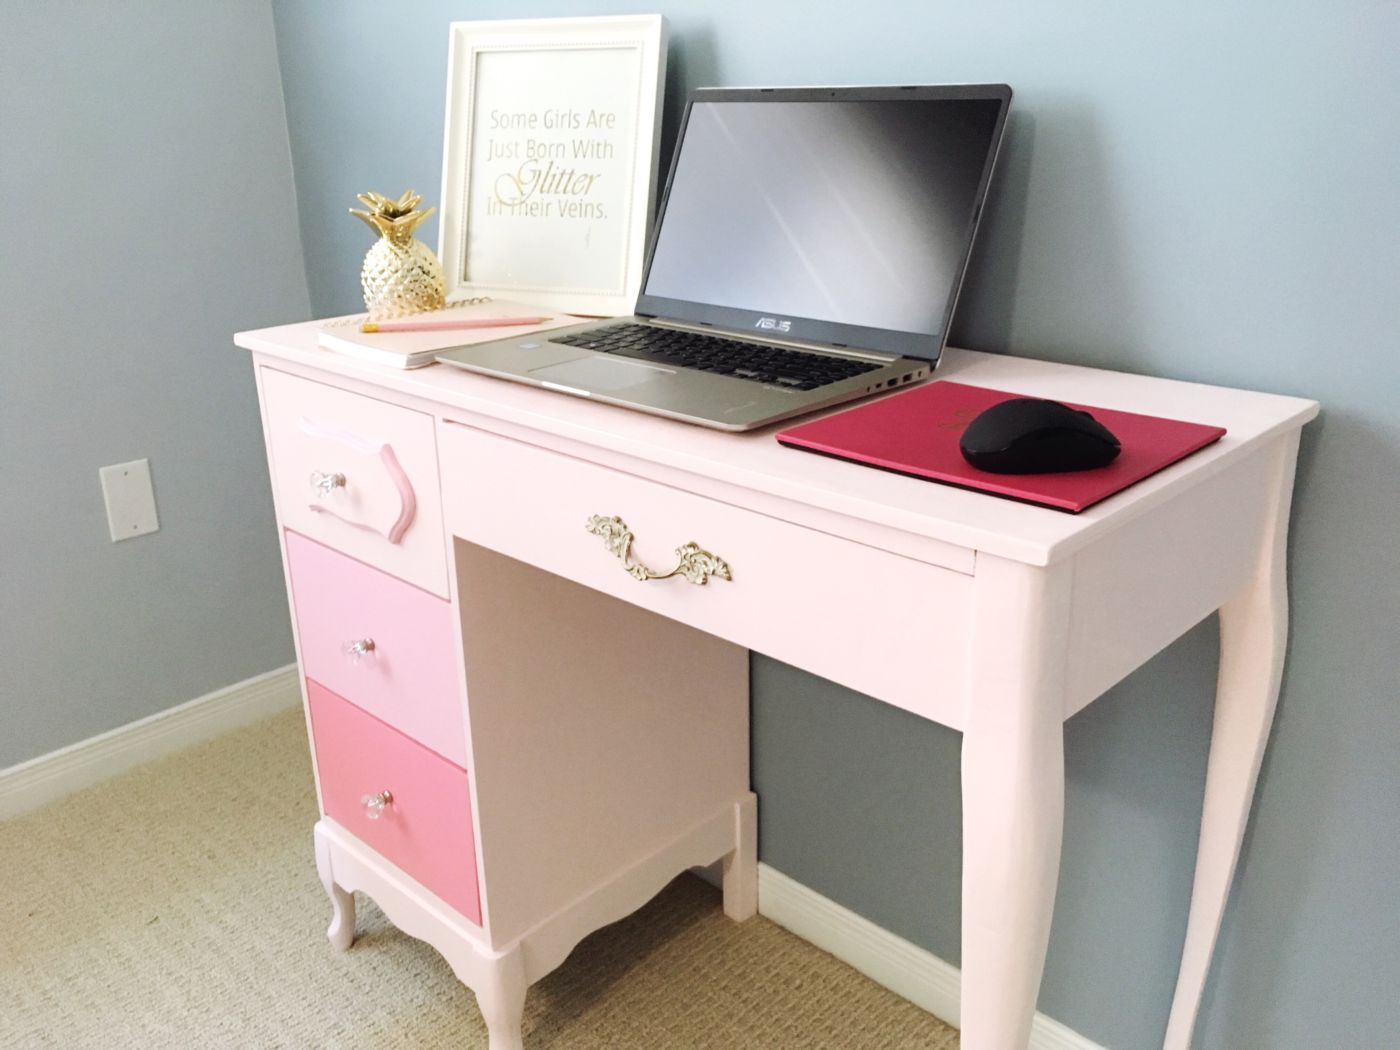 How to Paint an Old Desk with Premier Paint